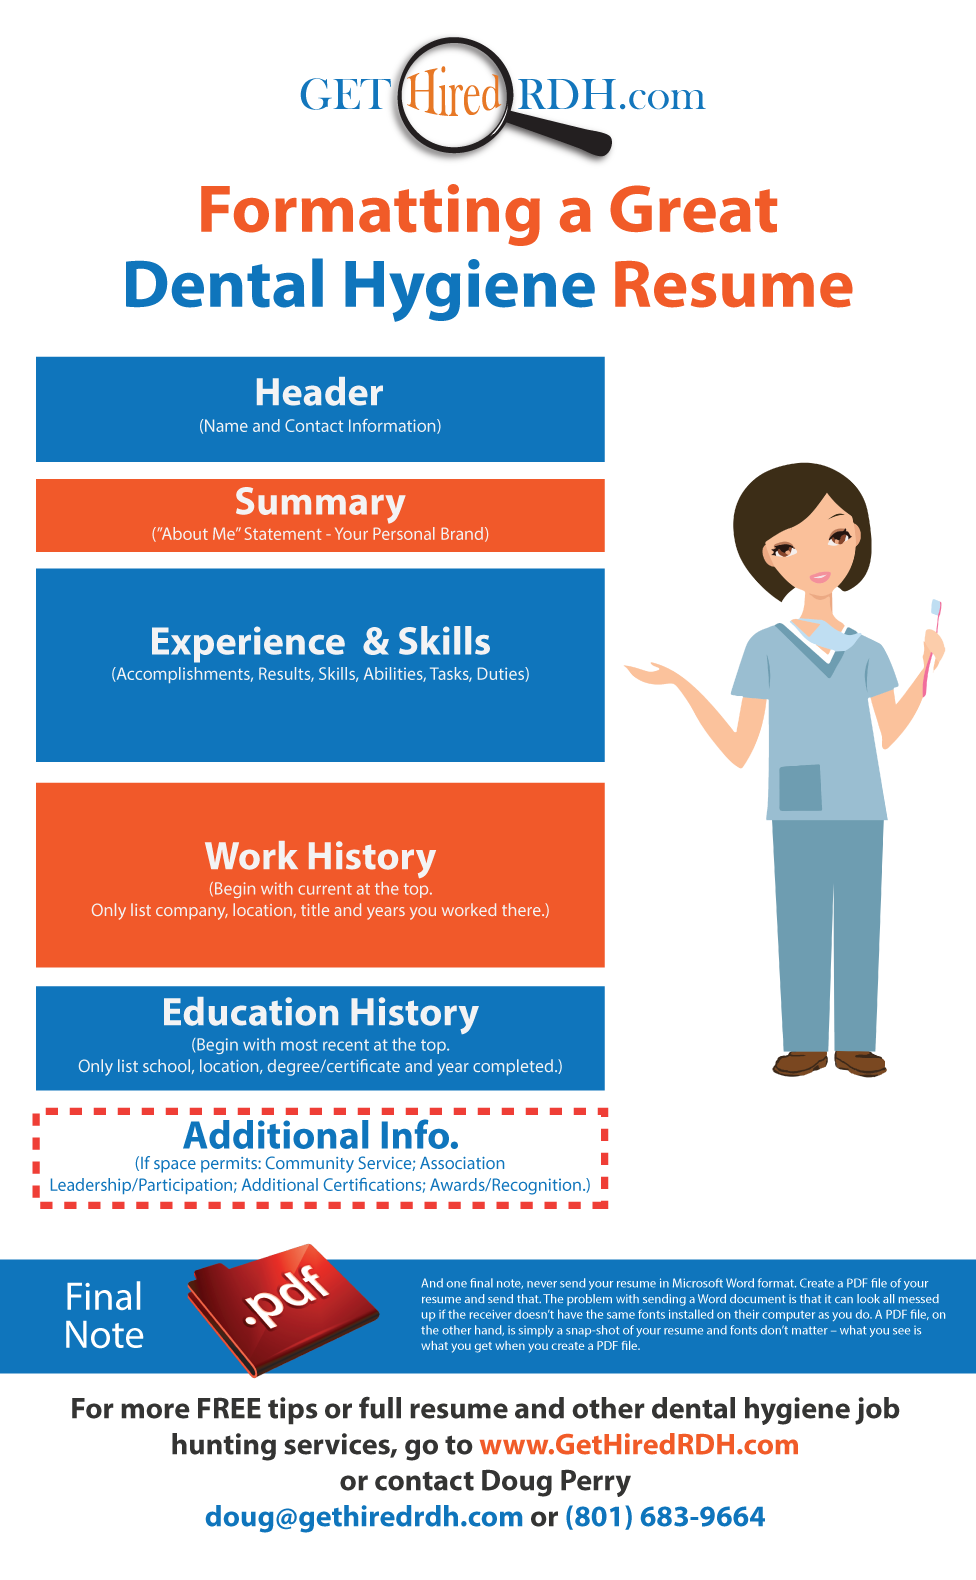 Formatting a Great Dental Hygiene Resume www.gethiredrdh